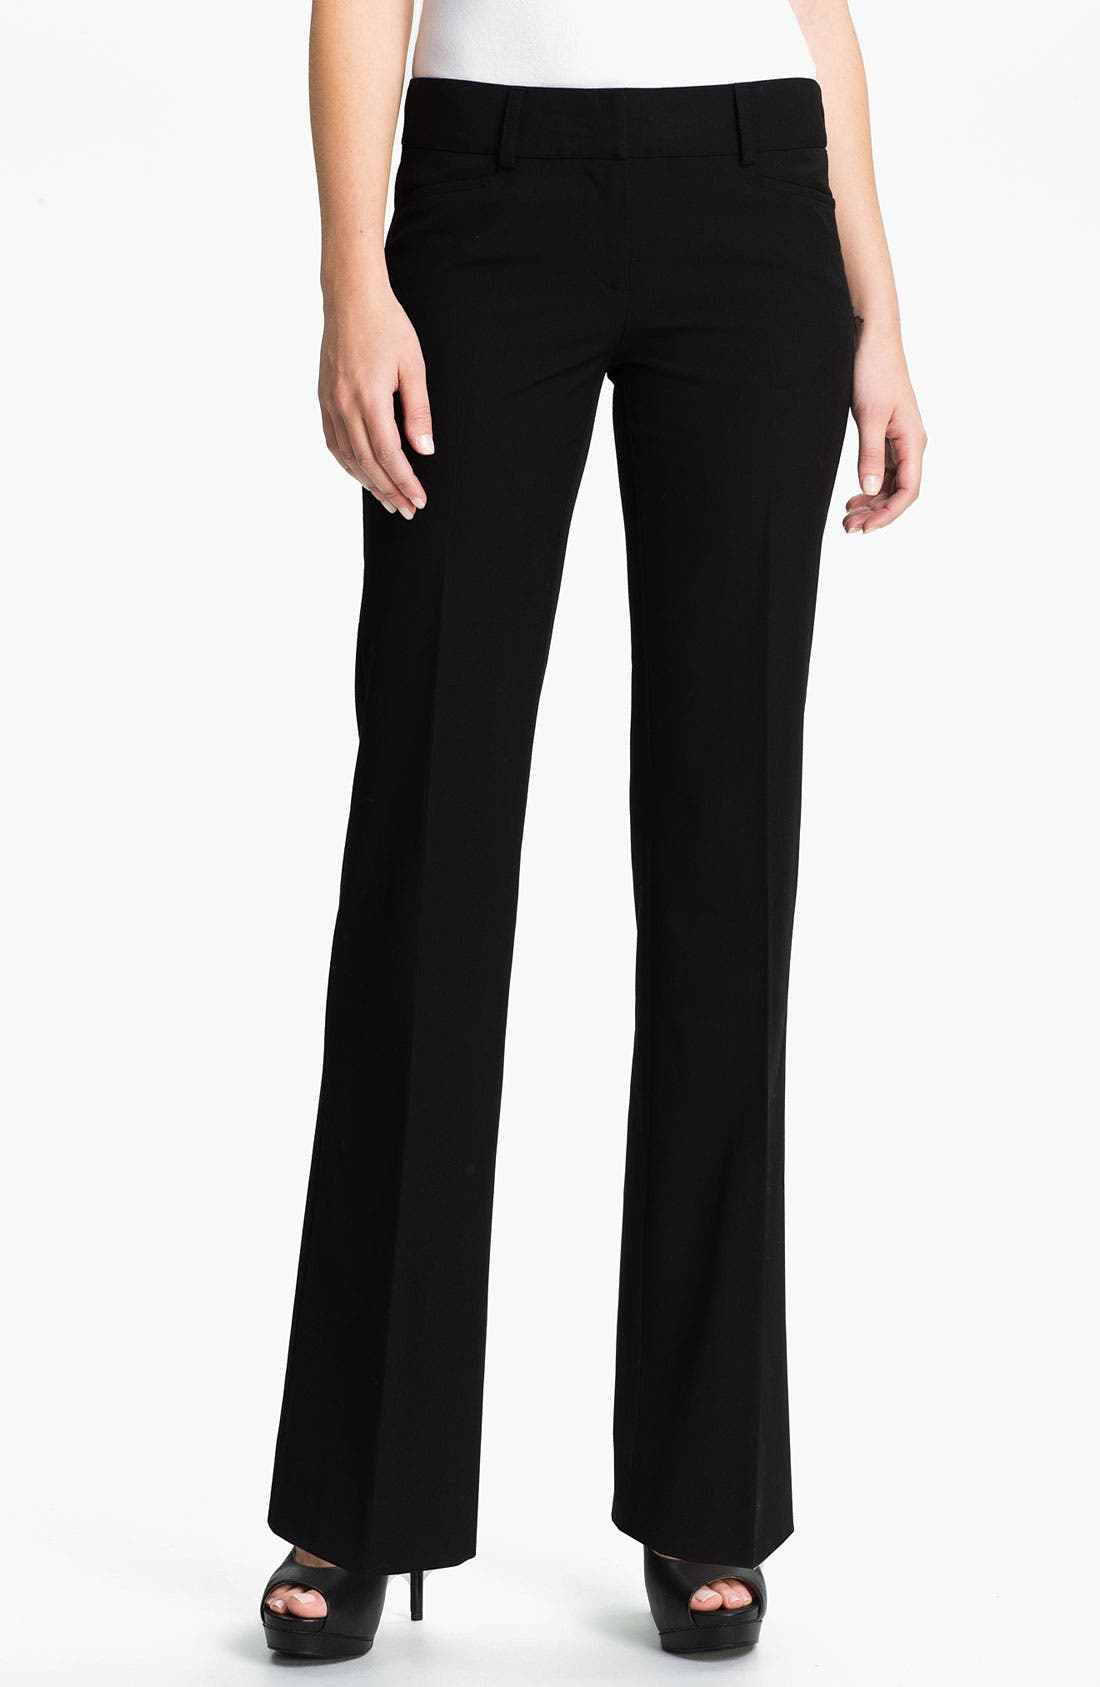 Alternate Image 1 Selected - MICHAEL Michael Kors 'Gramercy' Flare Leg Pants